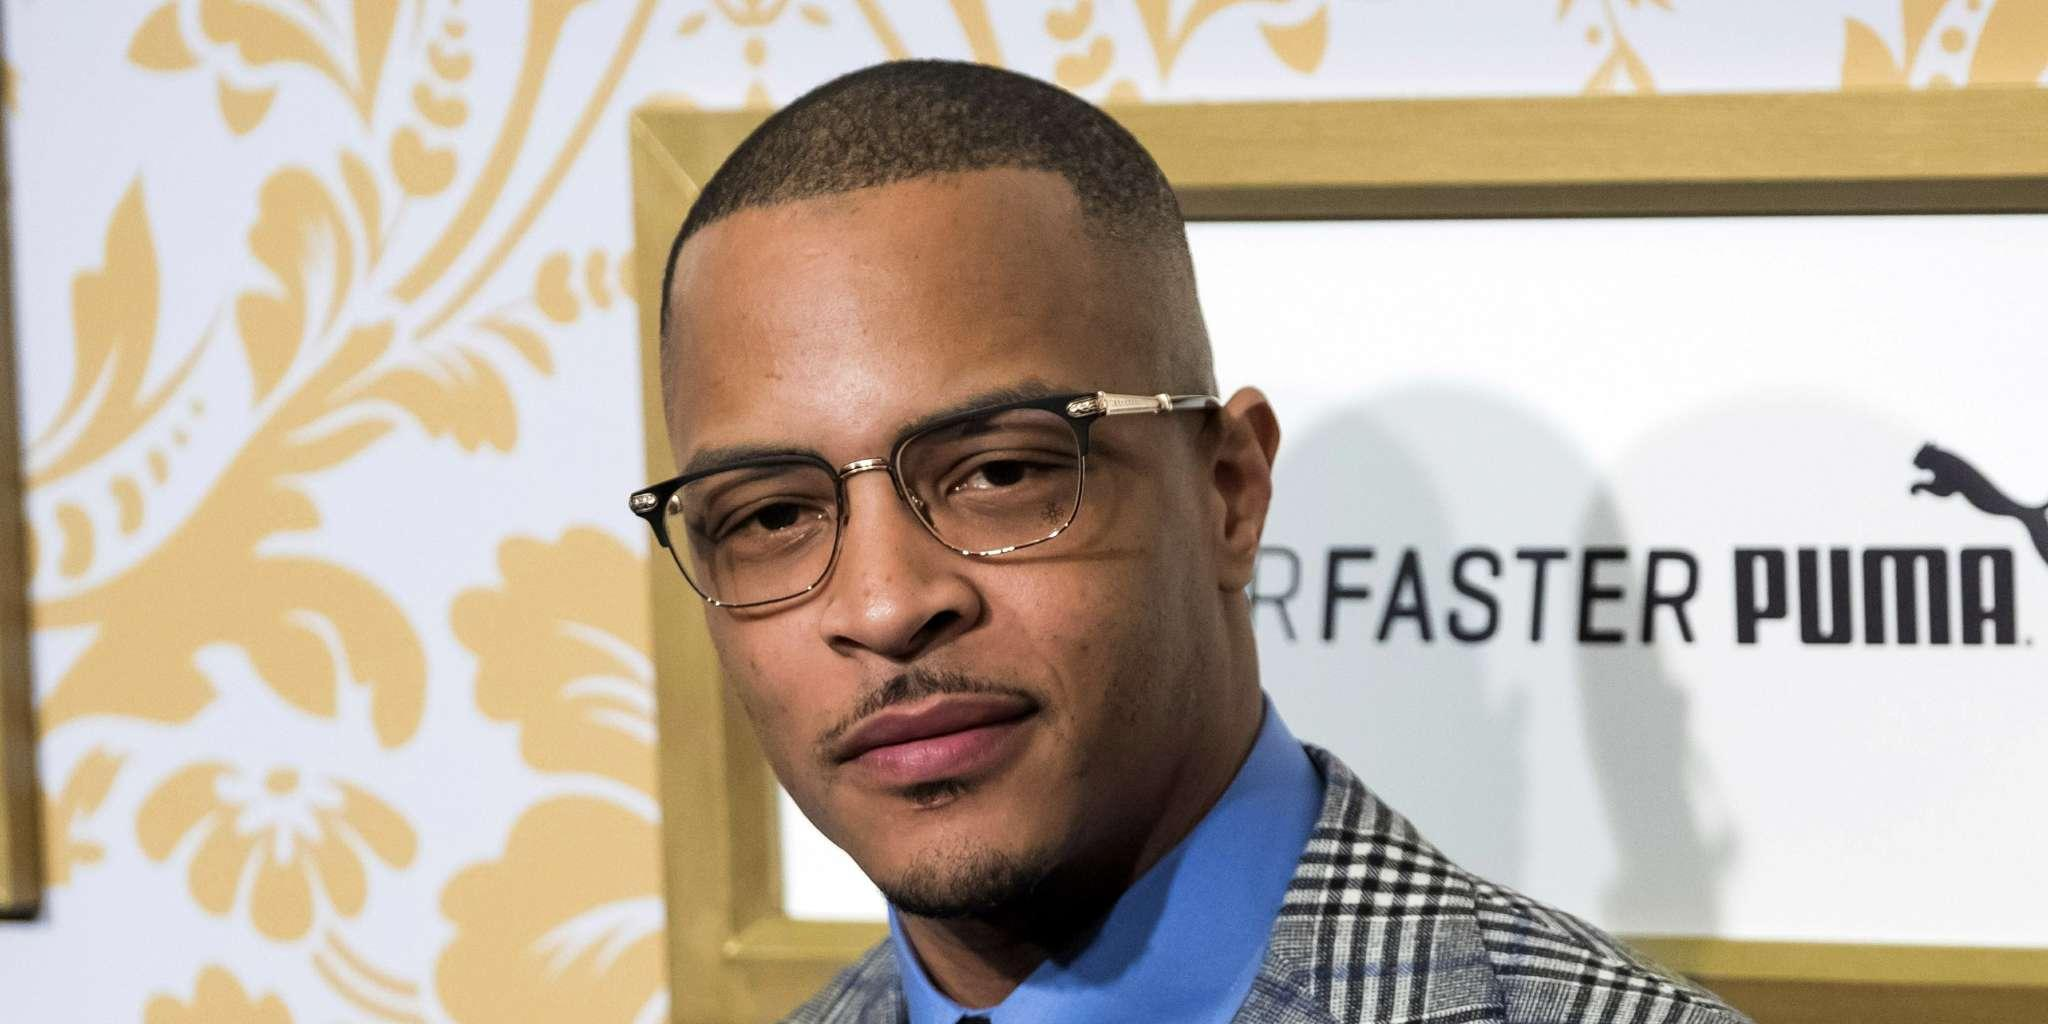 T.I. Has The Best Time With His Pals And Fans Appreciate The Great Company